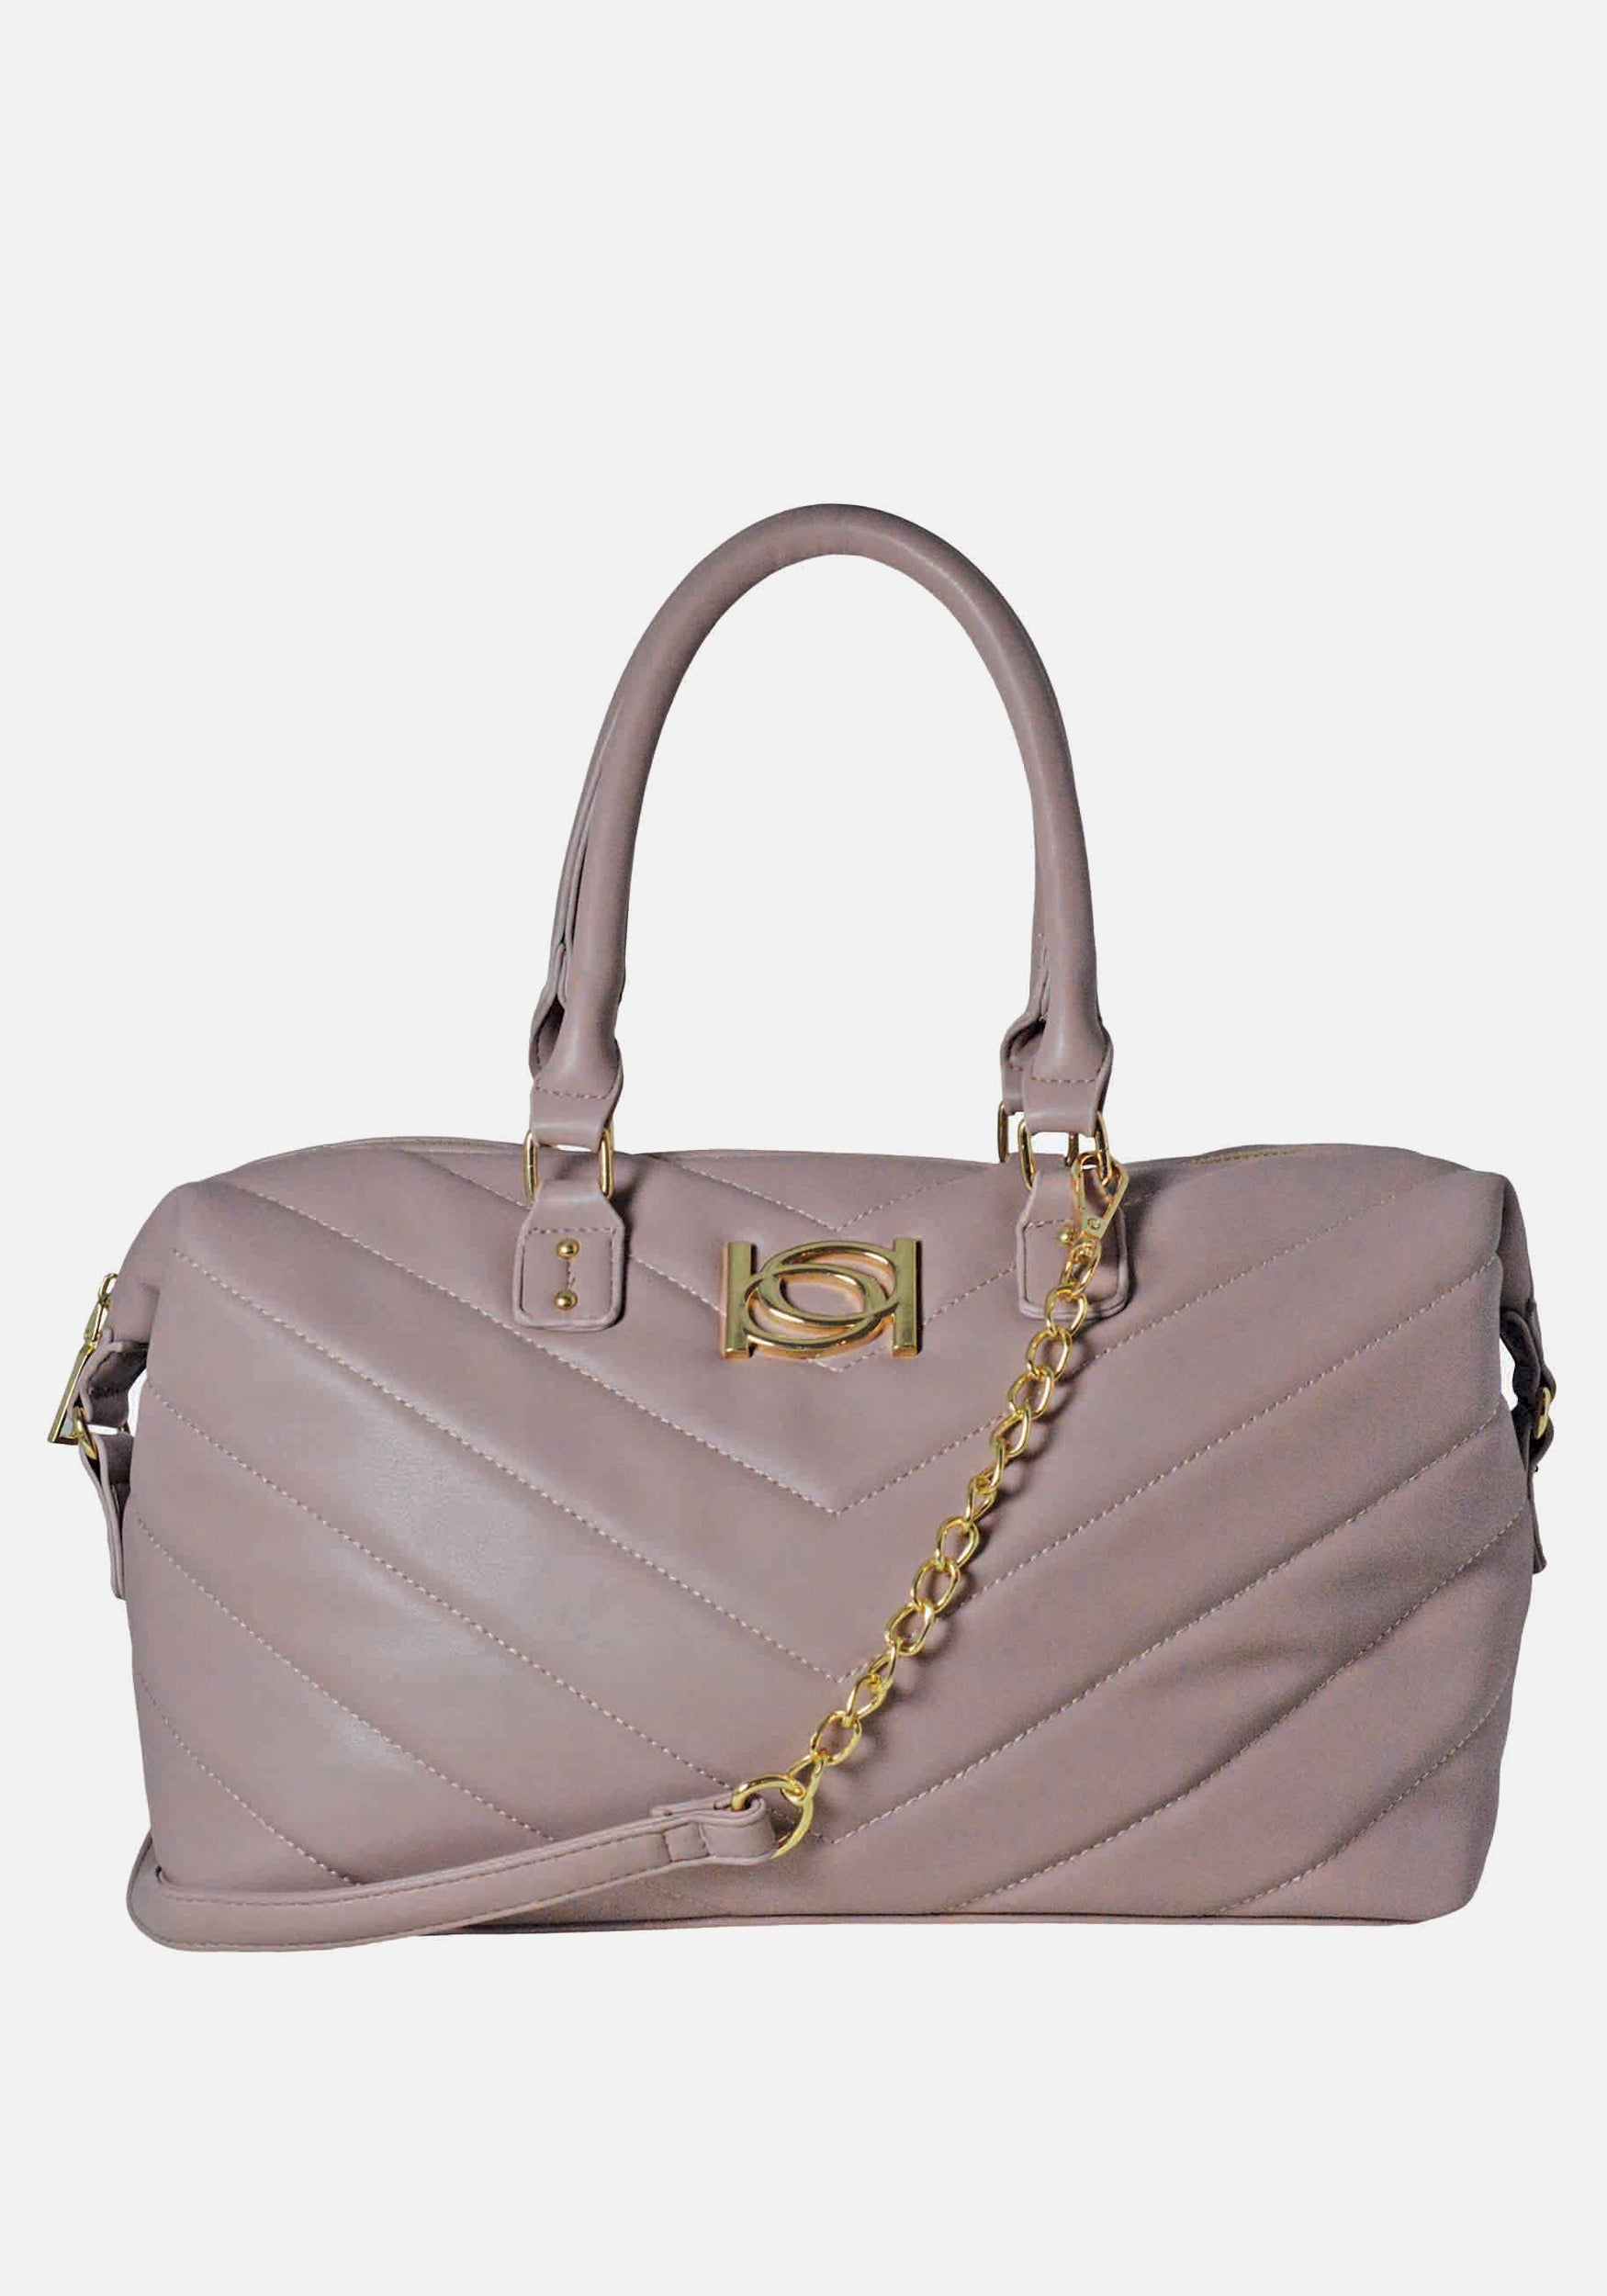 Bebe Women's Levi Satchel in Mauve Polyester